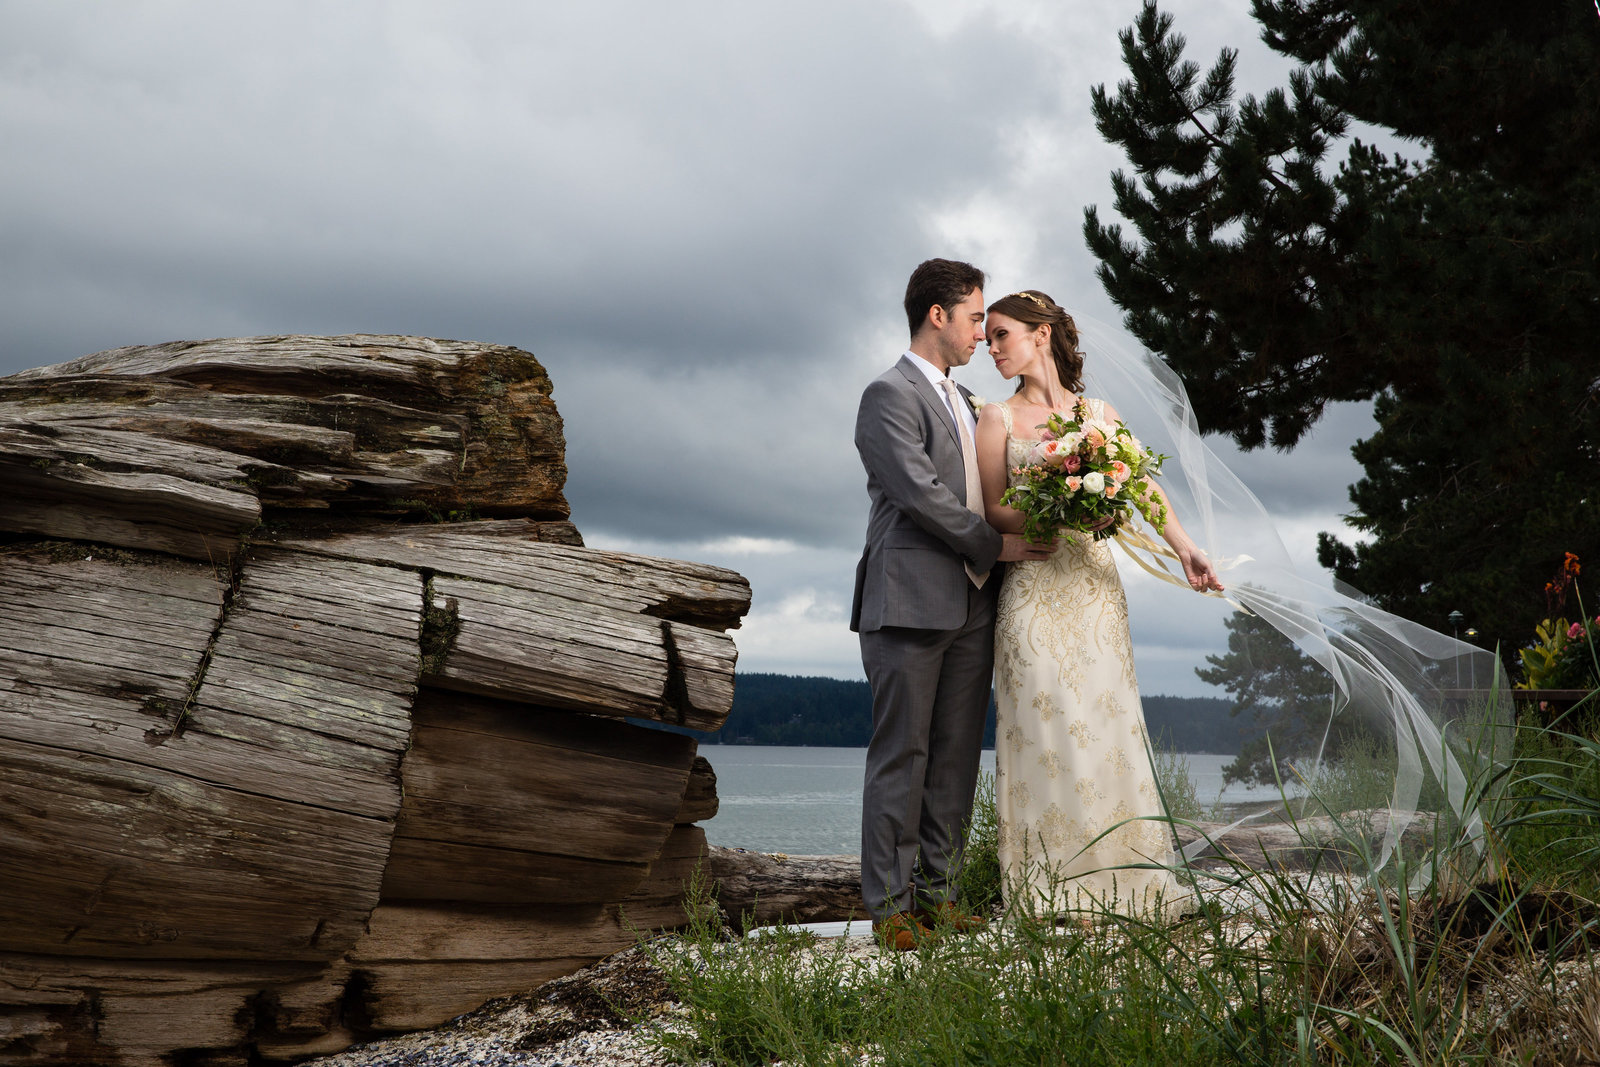 adventurous-wedding-by-lake-with-driftwood